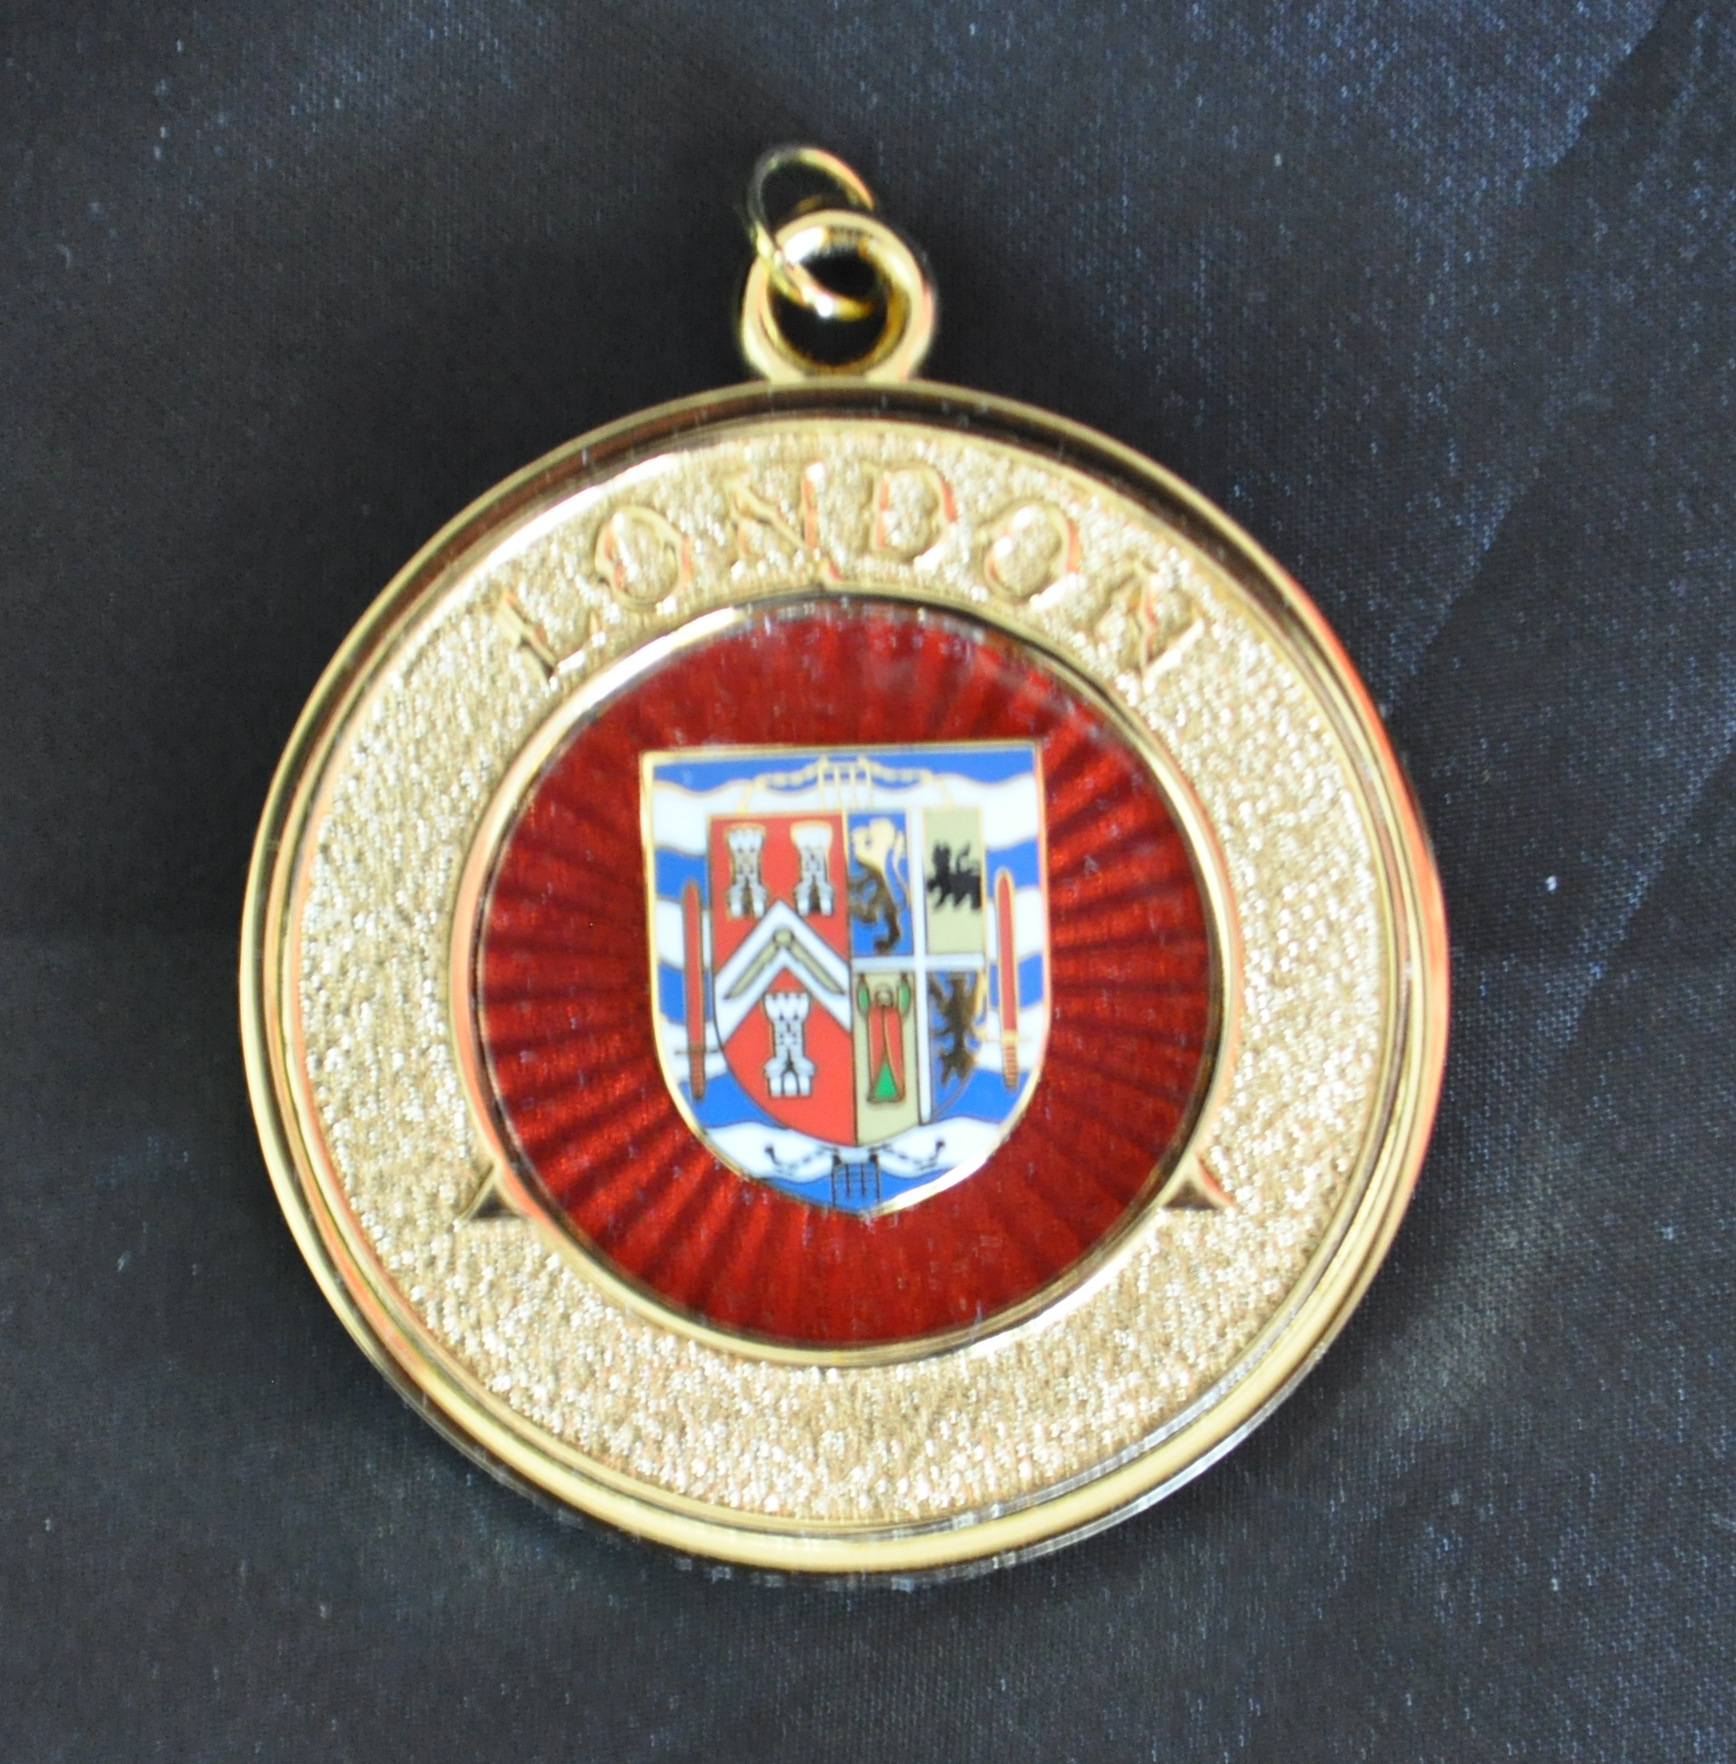 Royal Arch Metropolitan Grand Officers Collarette Jewel